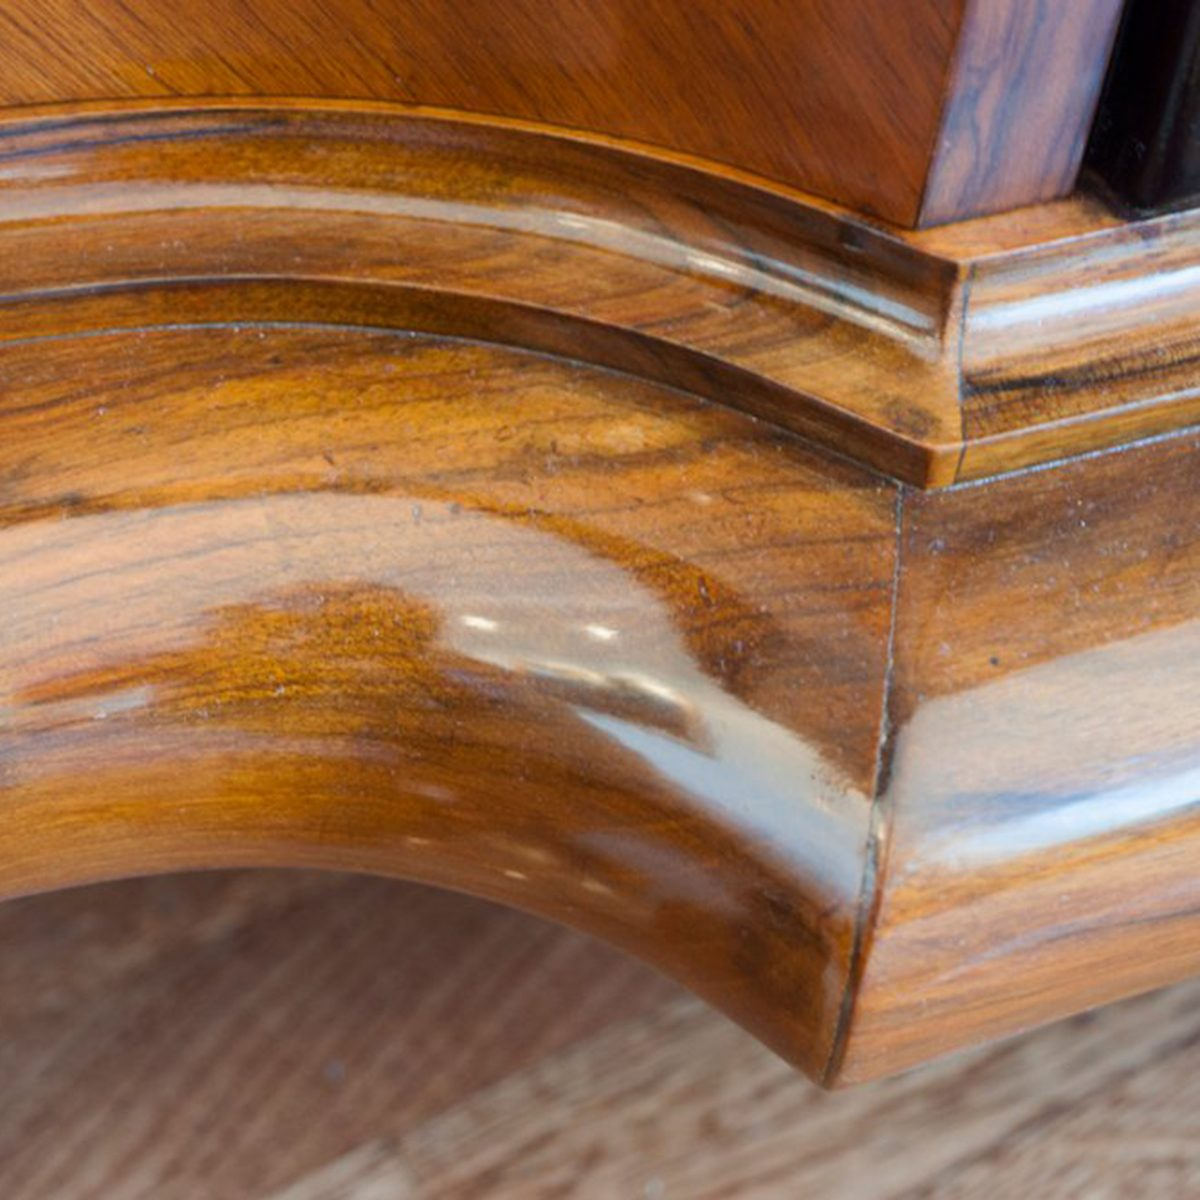 Waxed furniture